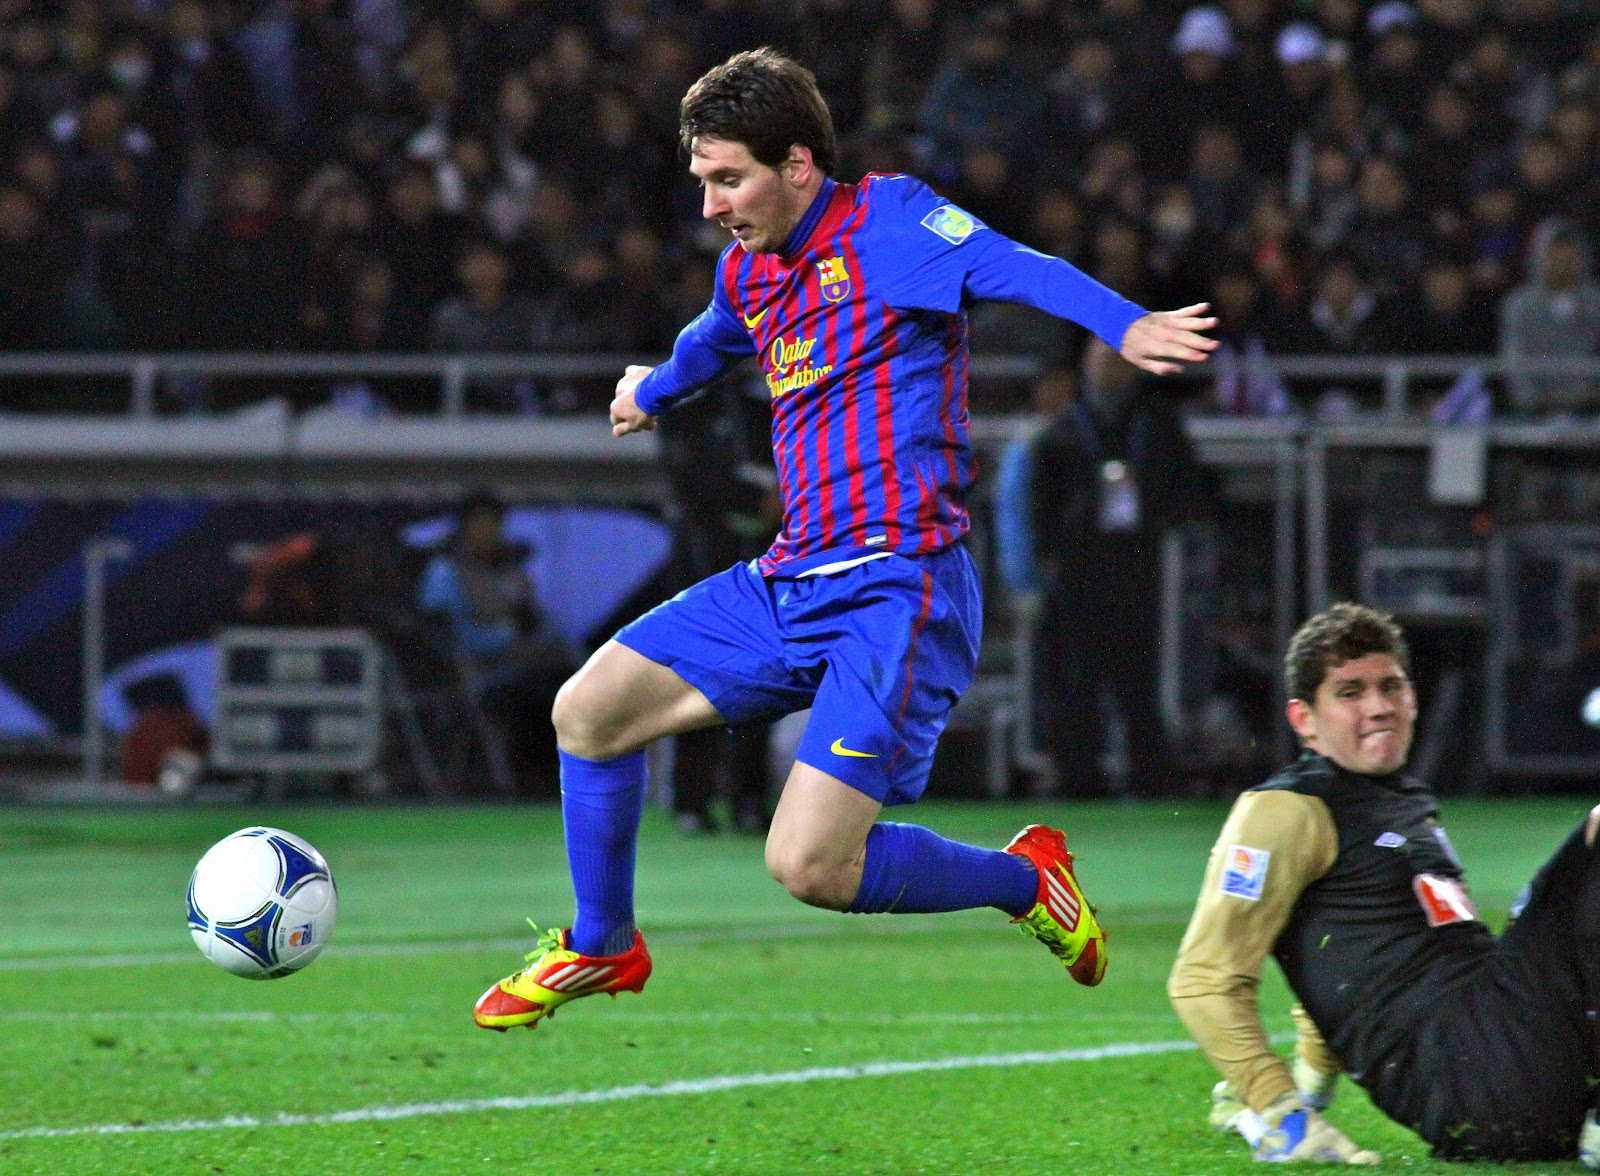 Lionel Messi controls a football while playing for Barcelona